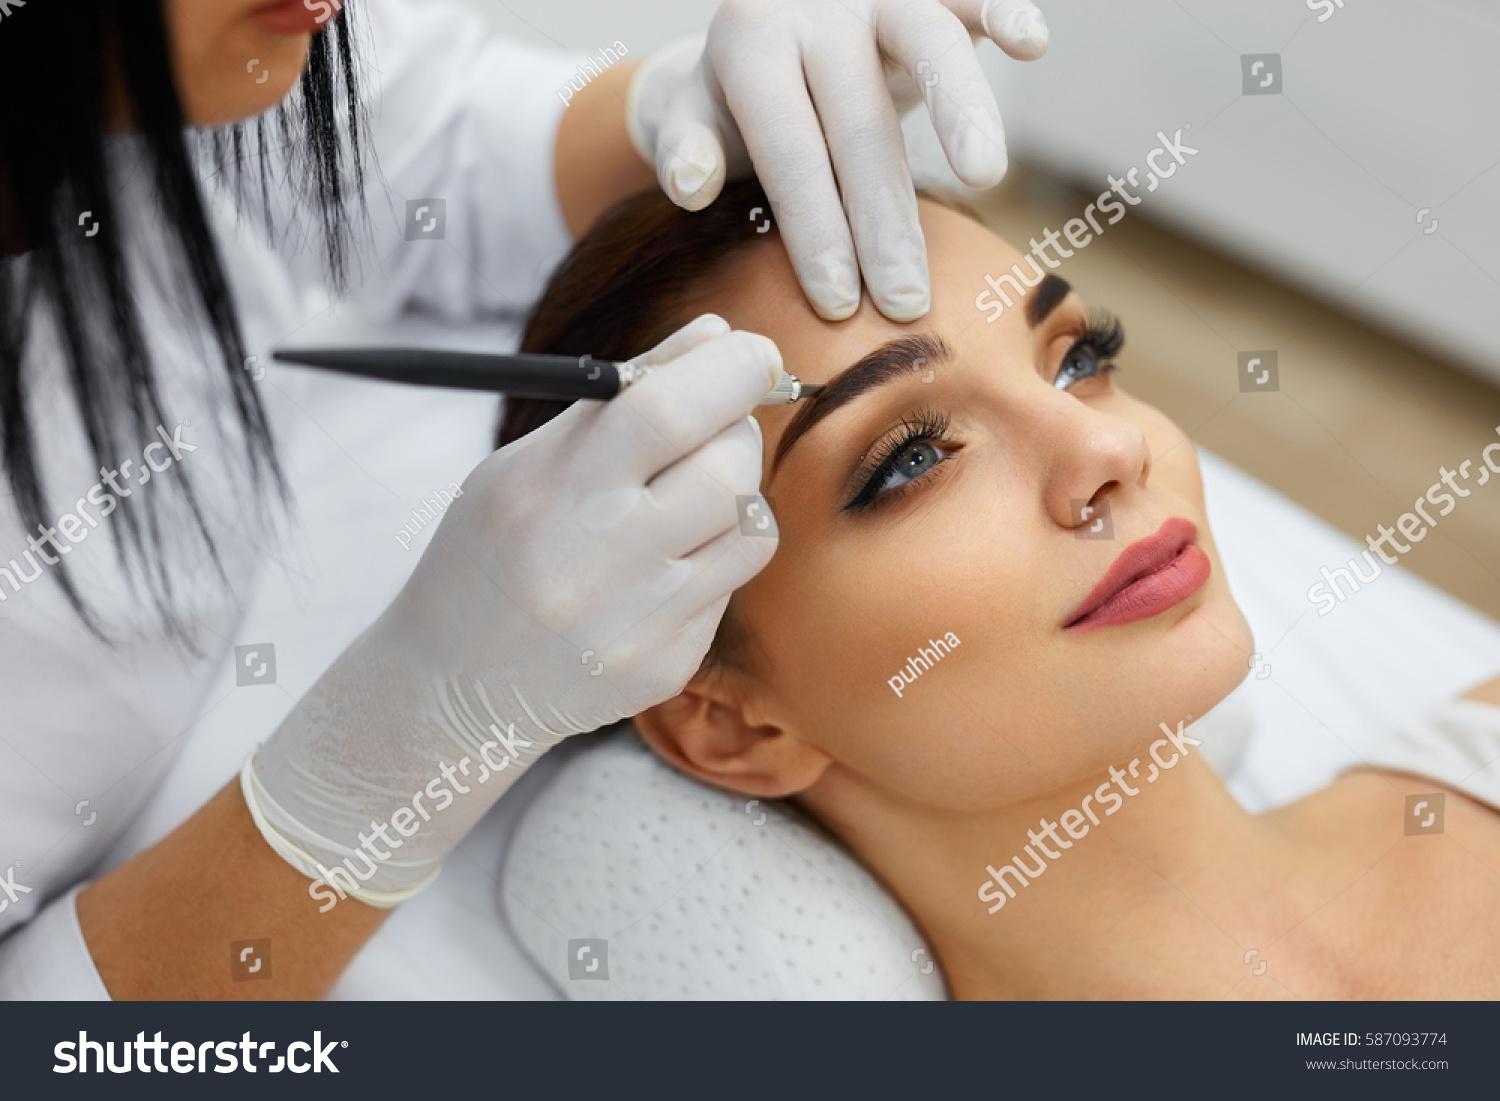 Permanent Makeup For Eyebrows Closeup Of Beautiful Woman With Thick